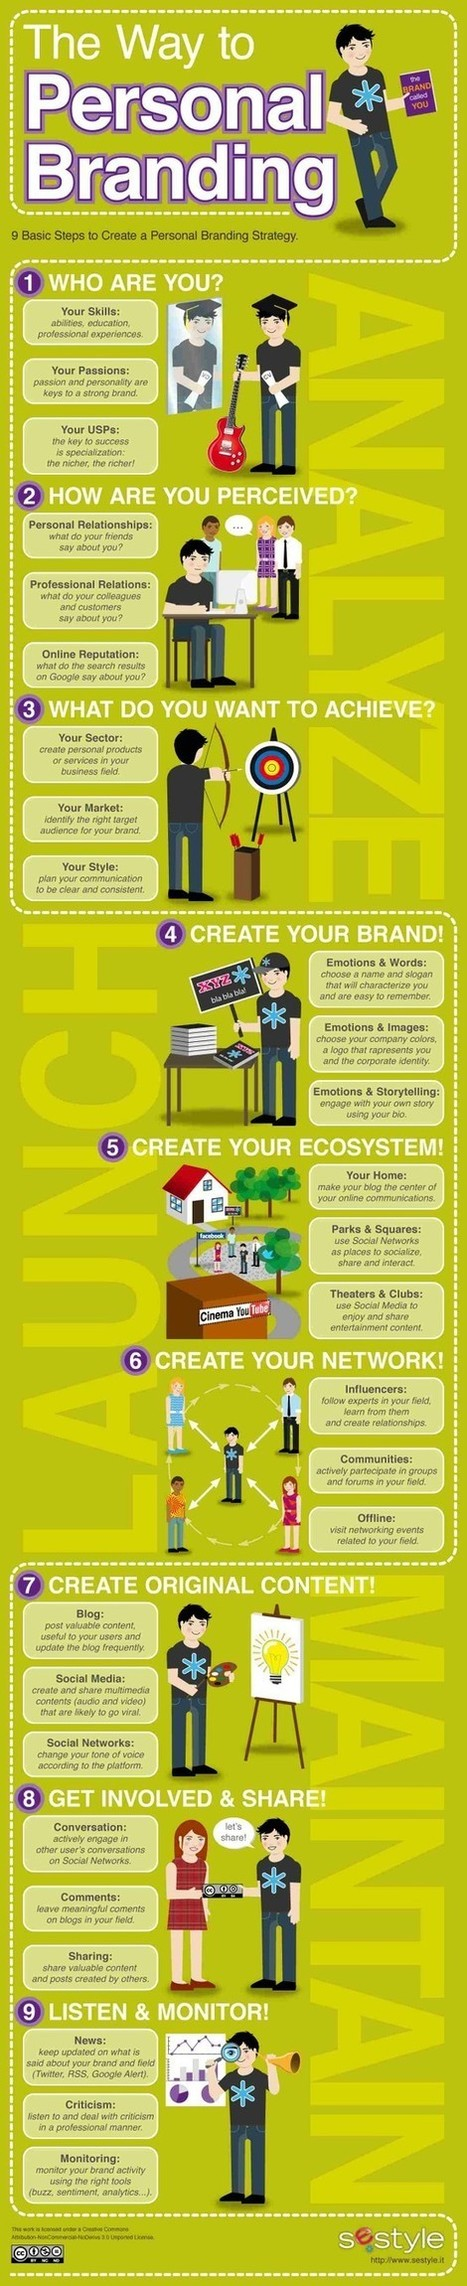 A Nine-Step Path to Personal Branding [Infographic] | Personal Branding | Scoop.it